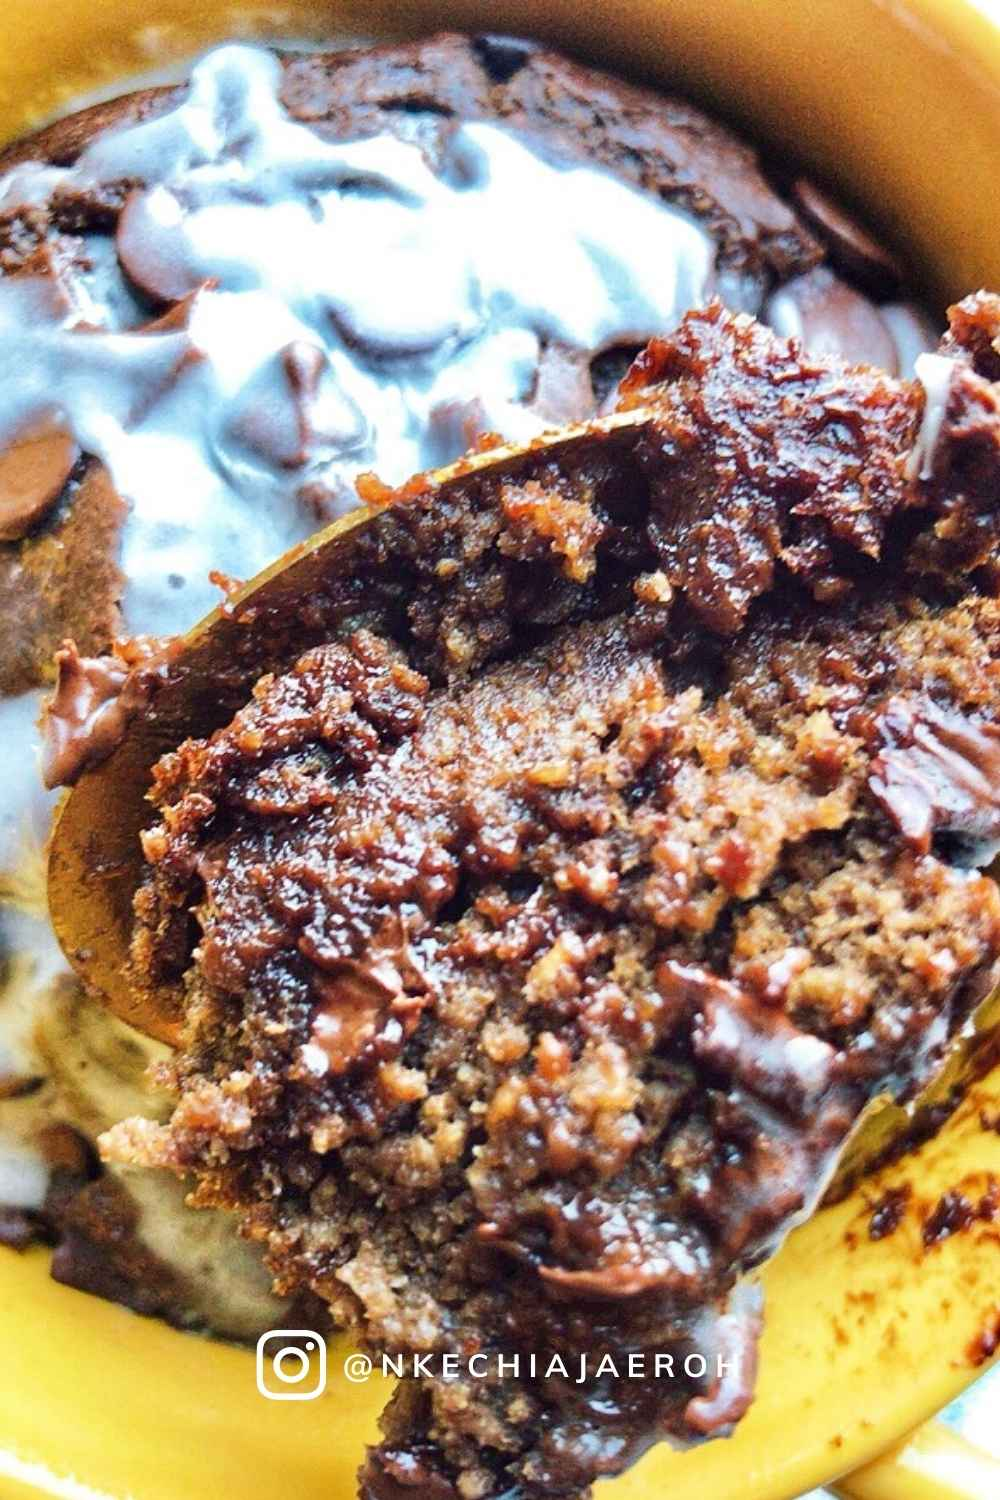 Making baked oatmeal is easy and requires only two steps - blend, bake, and enjoy! This recipe makes for a wholesome breakfast, or dessert everyone member of your family will love. Top this with a little yogurt, icing, more melted chocolate, or any nut/seed spread of choice to get the best out of it! #bakeoats #TikTokhack #bakedoatmeal #oatmeal #healthybreakfast #oatcake #tikTokrecipe